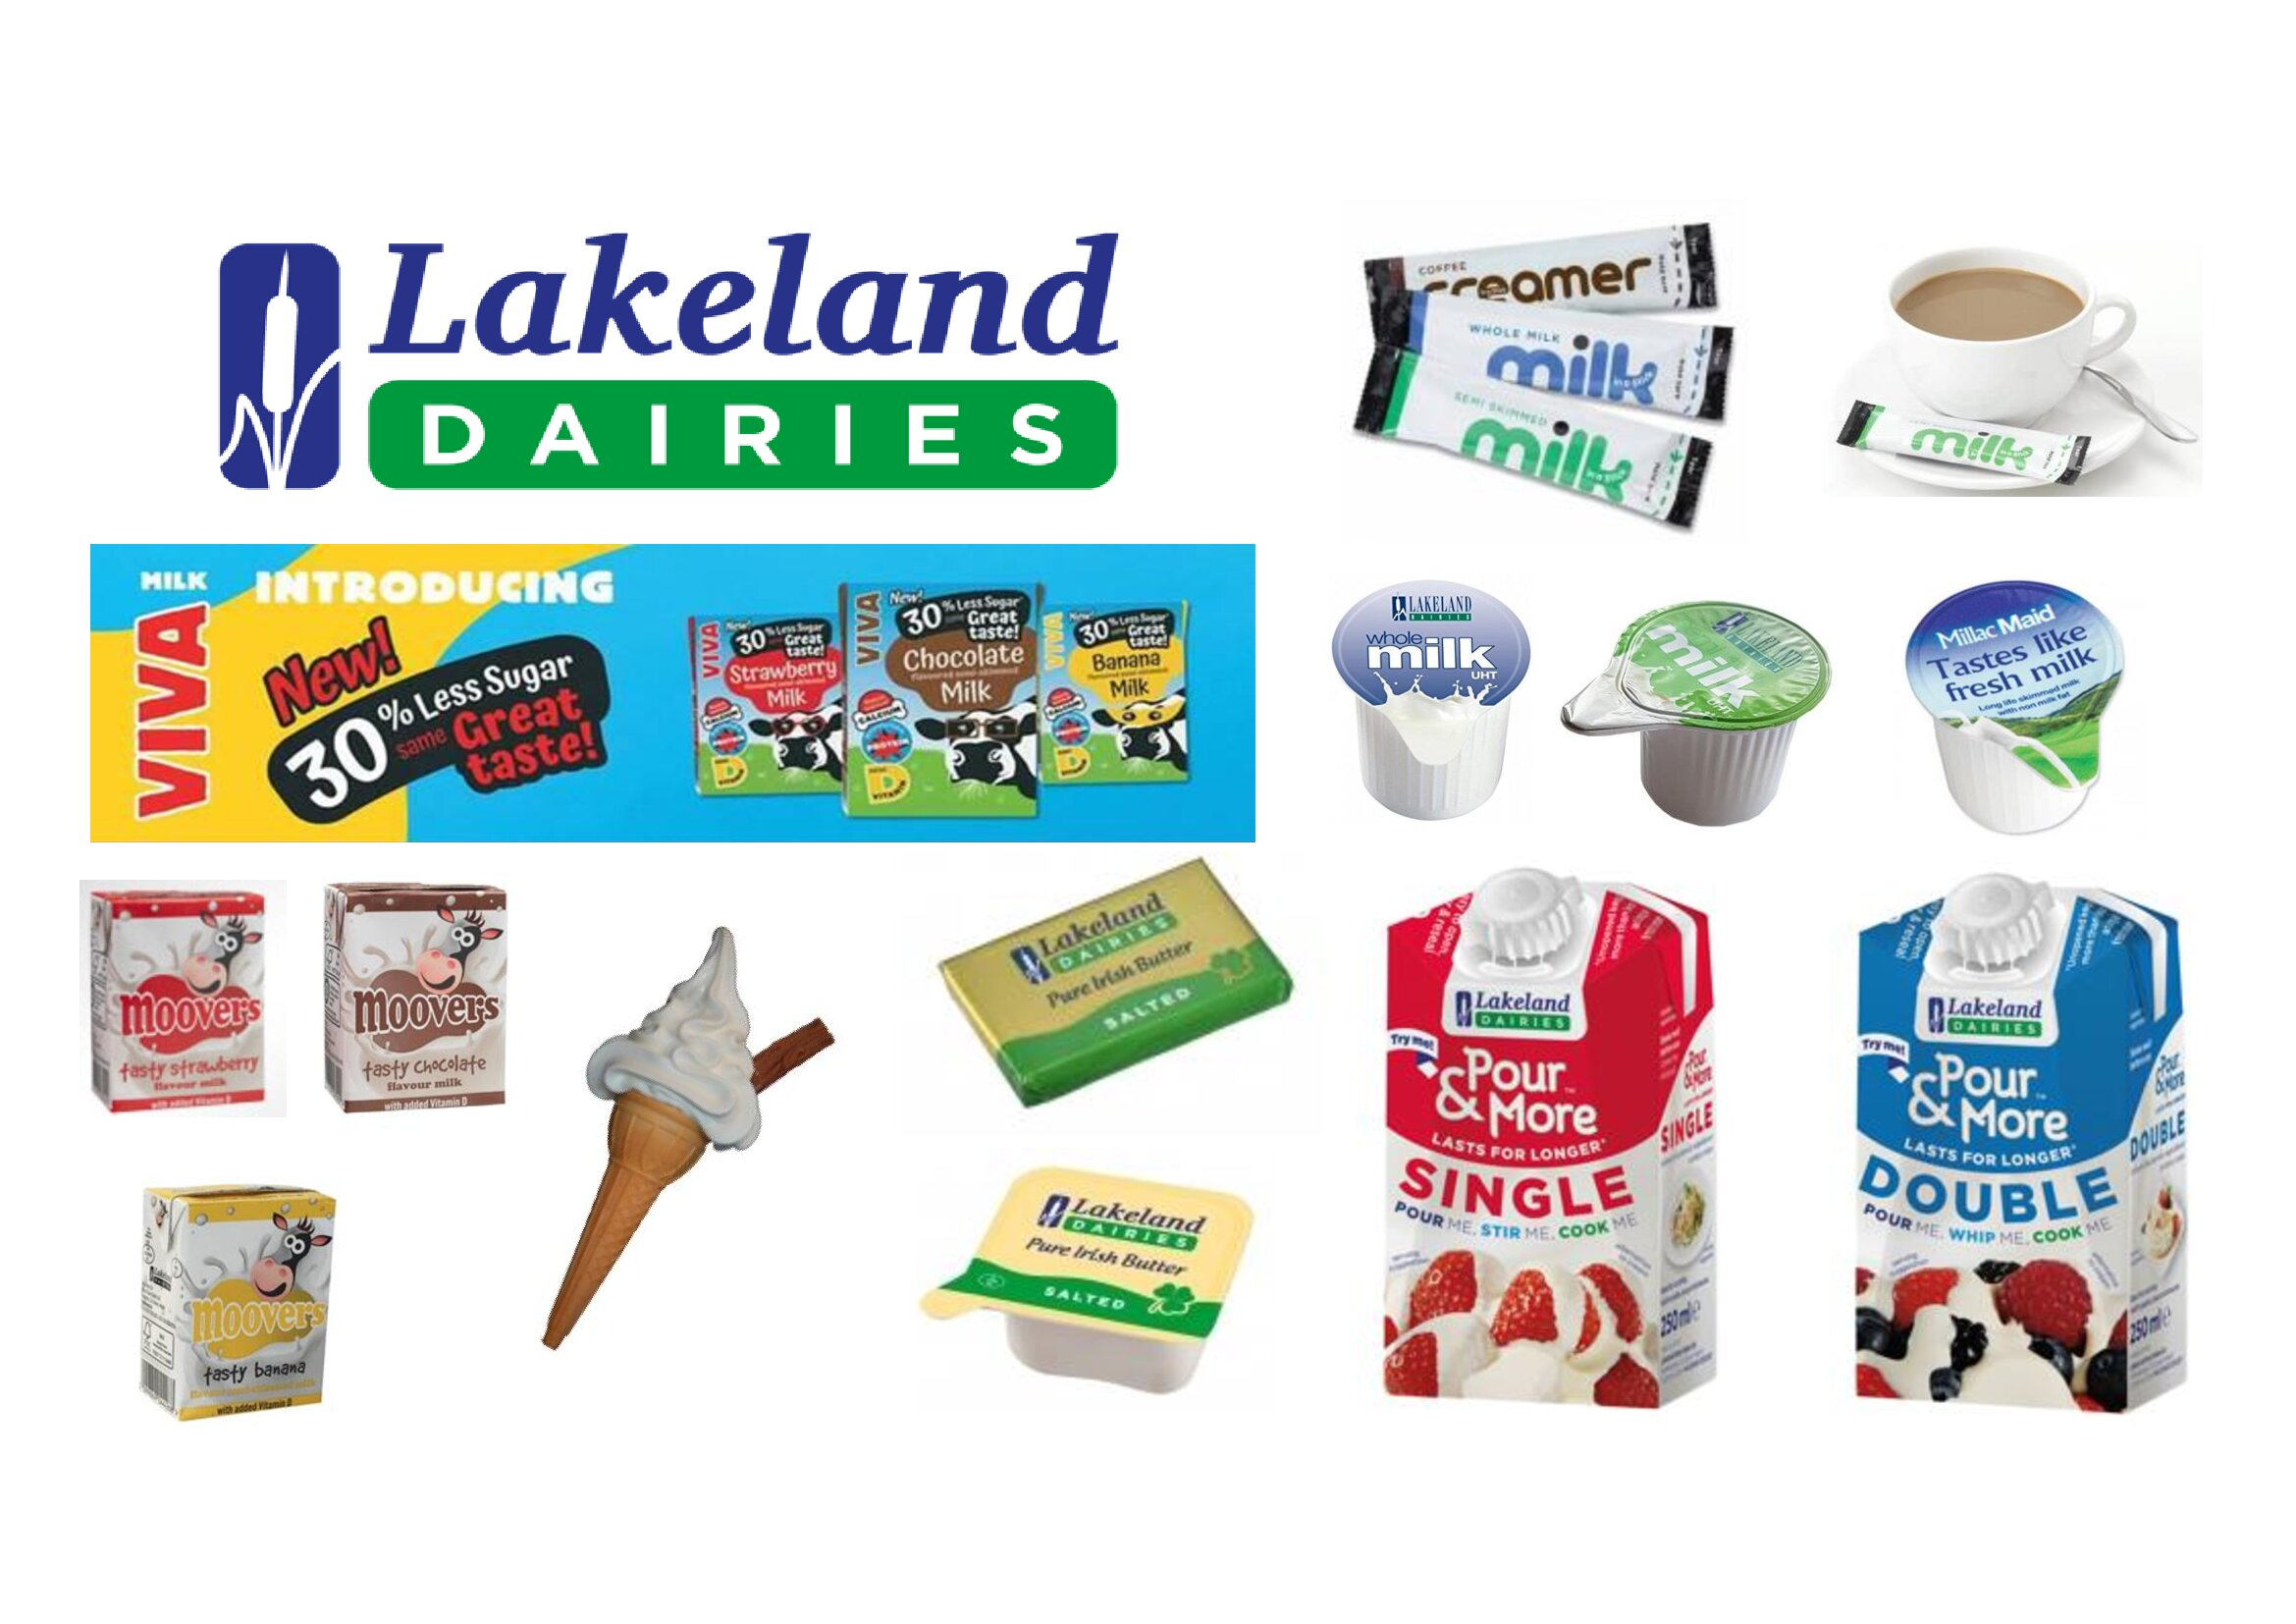 Lakeland Dairies